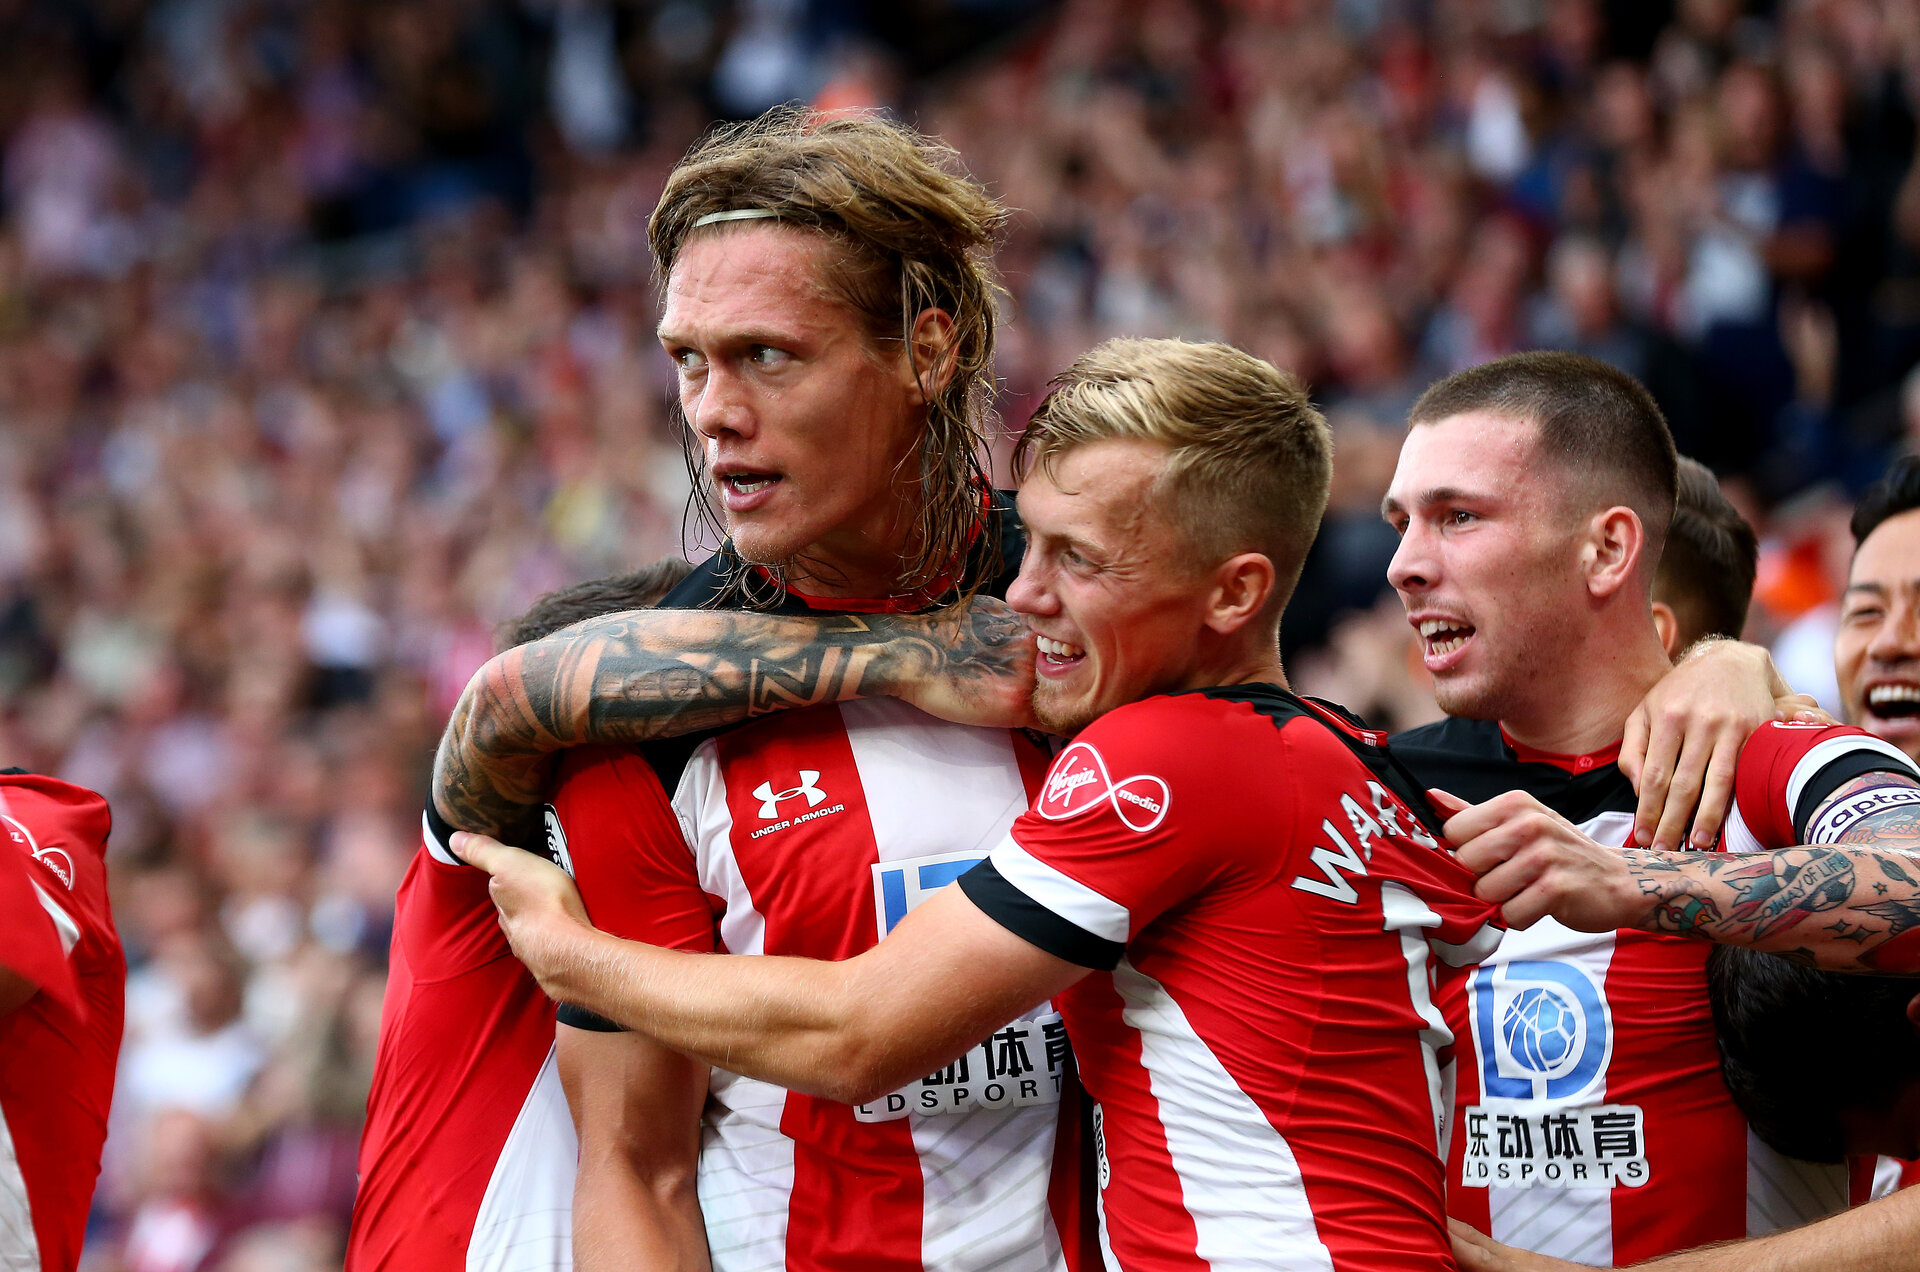 SOUTHAMPTON, ENGLAND - AUGUST 31: Jannik Vestergaard of Southampton celebrates with his team mates during the Premier League match between Southampton FC and Manchester United at St Mary's Stadium on August 31, 2019 in Southampton, United Kingdom. (Photo by Matt Watson/Southampton FC via Getty Images)